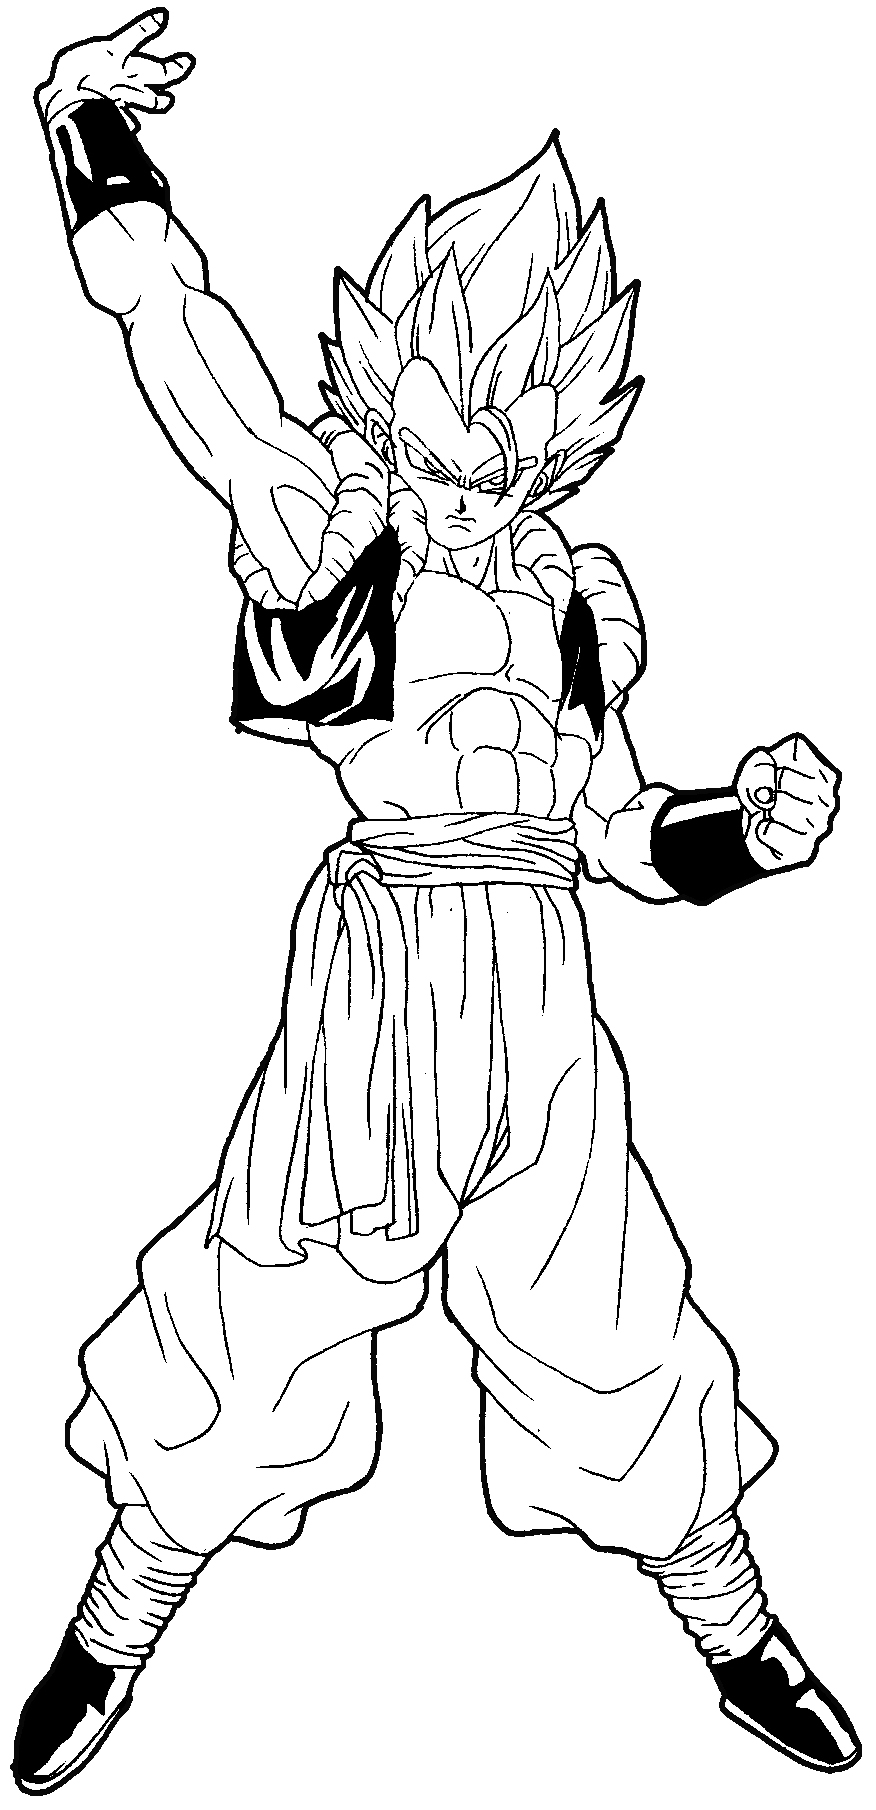 how to draw dragon ball z how to draw shenron from dragon ball z step by step draw z to how dragon ball